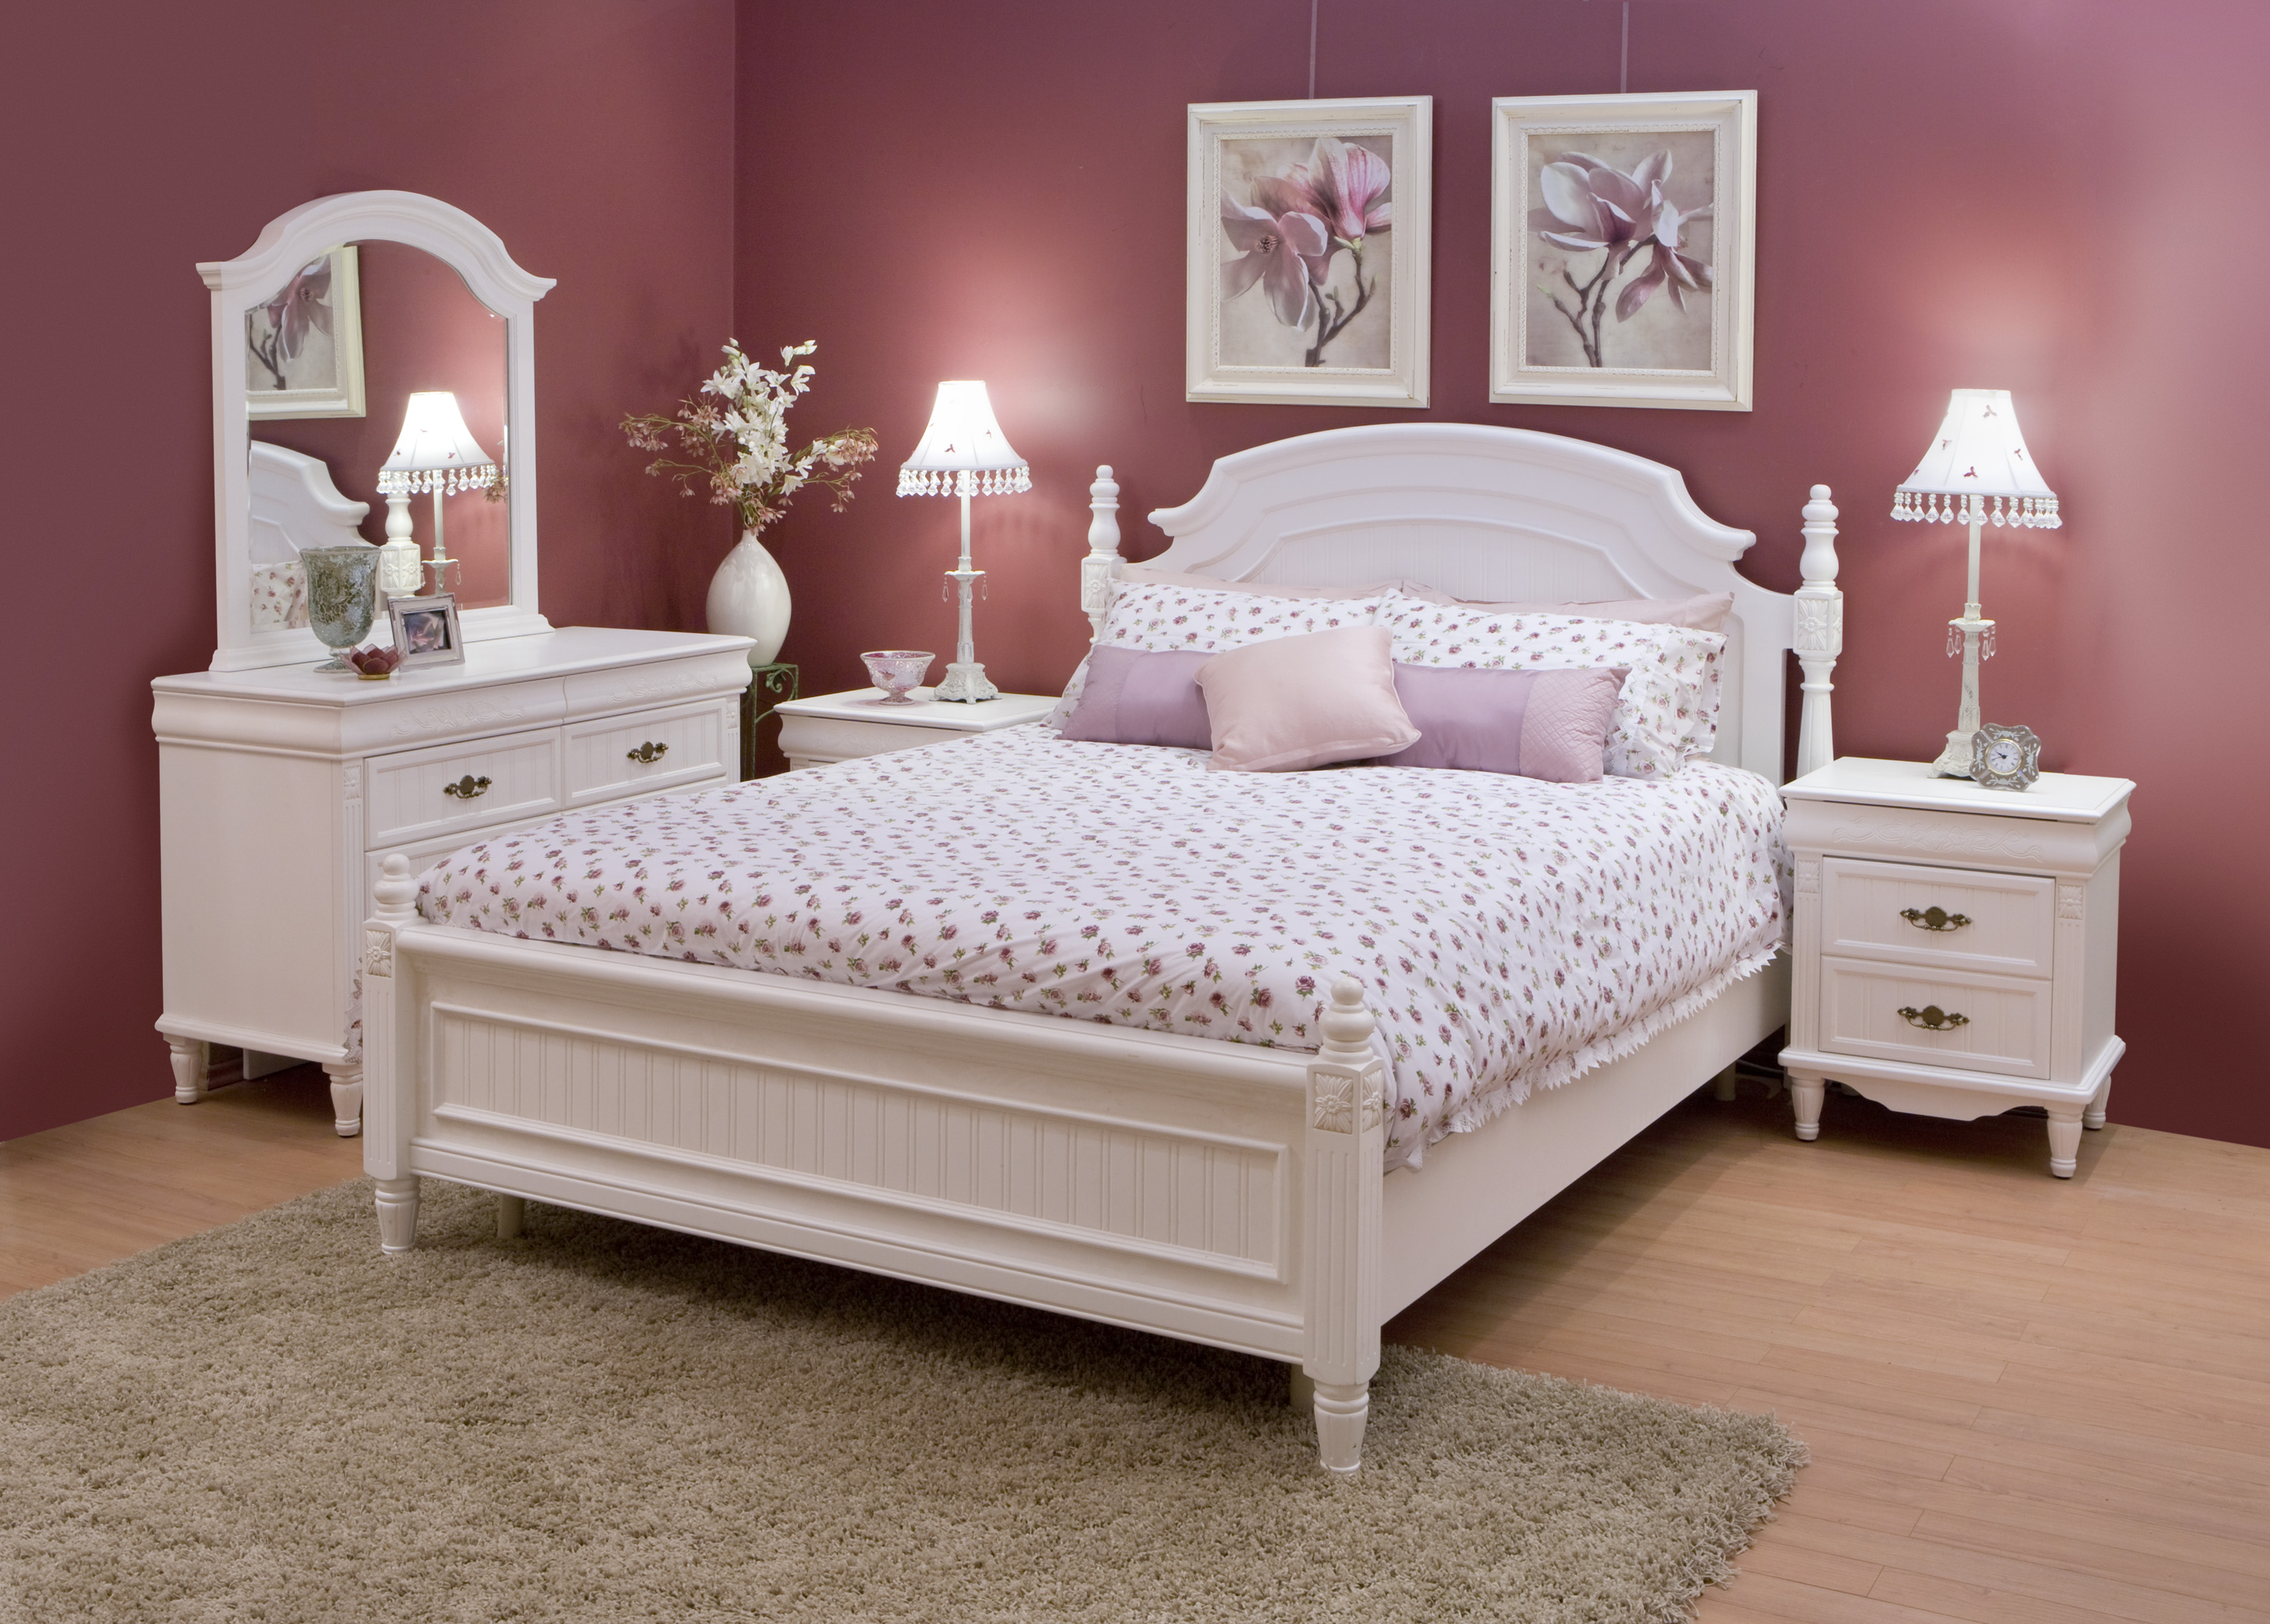 Pink Bedroom for a Girl